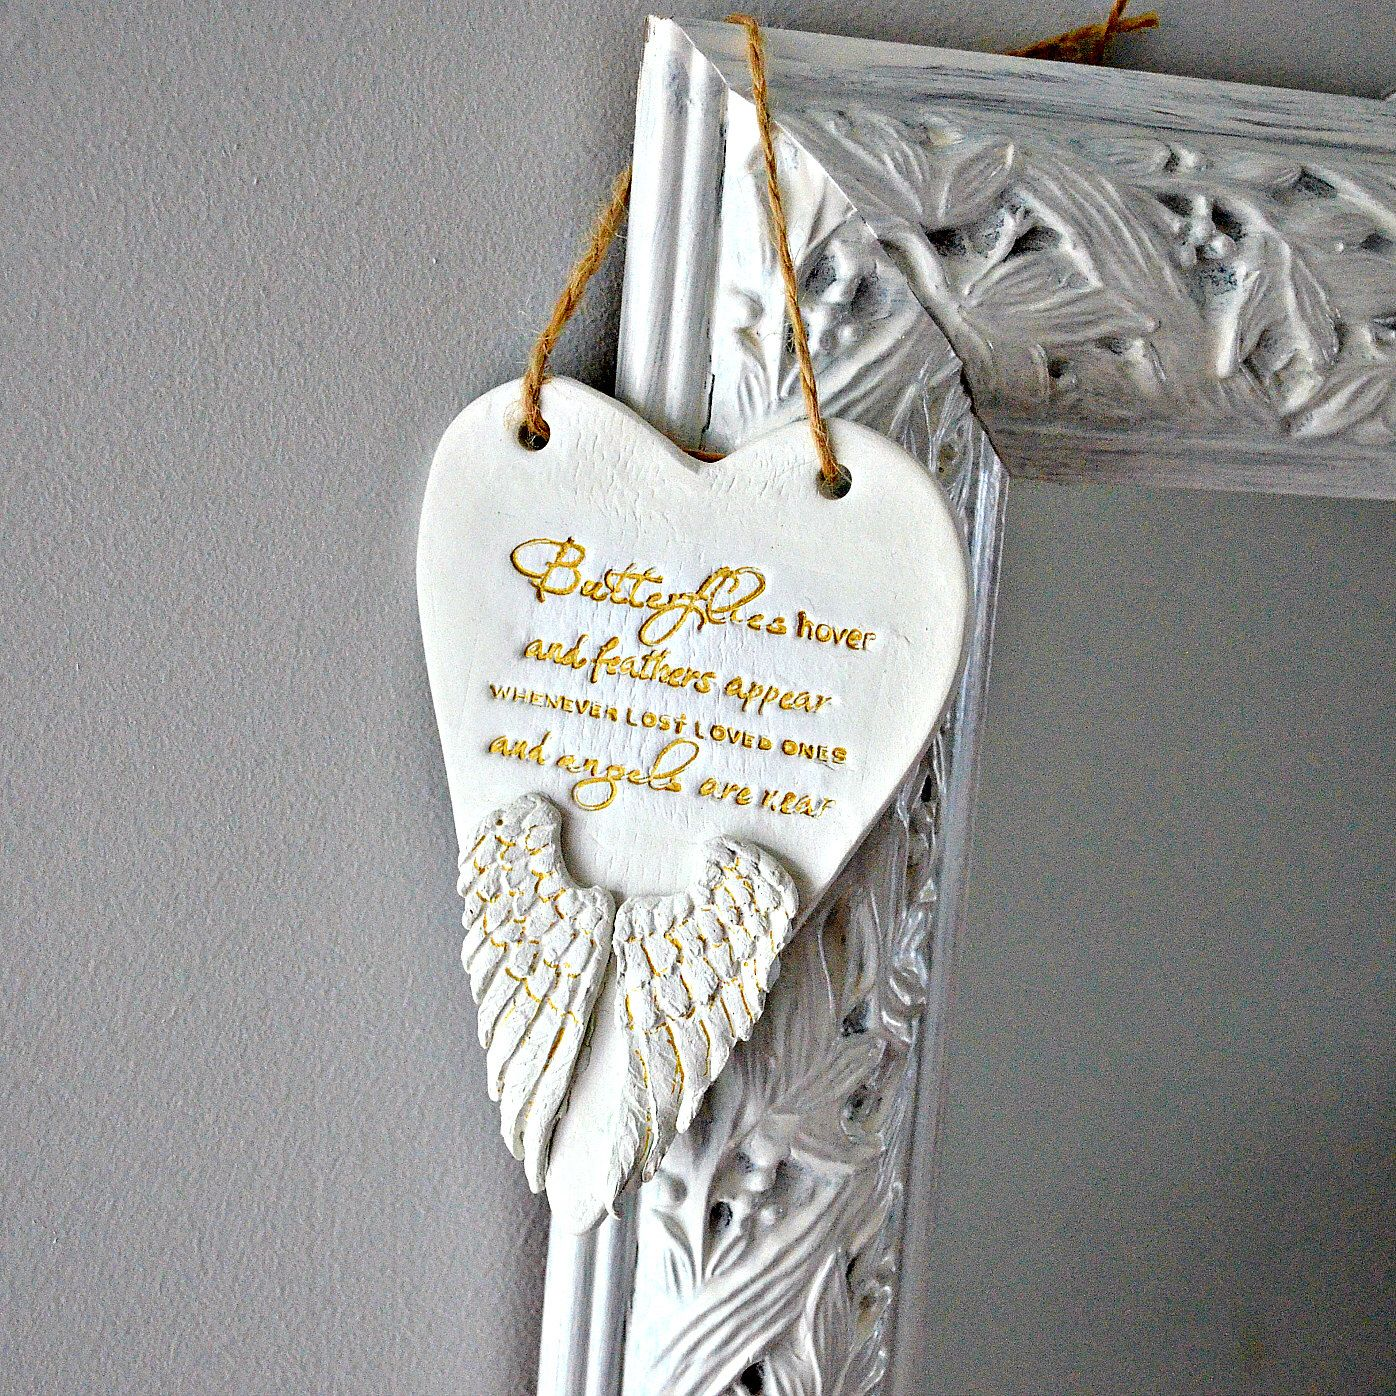 Ornaments for loved ones lost - In Memory Ornament Memorial Gift Angel Wings Remembrance Keepsake Death Of Loved One Feathers Appear When Angels Are Near